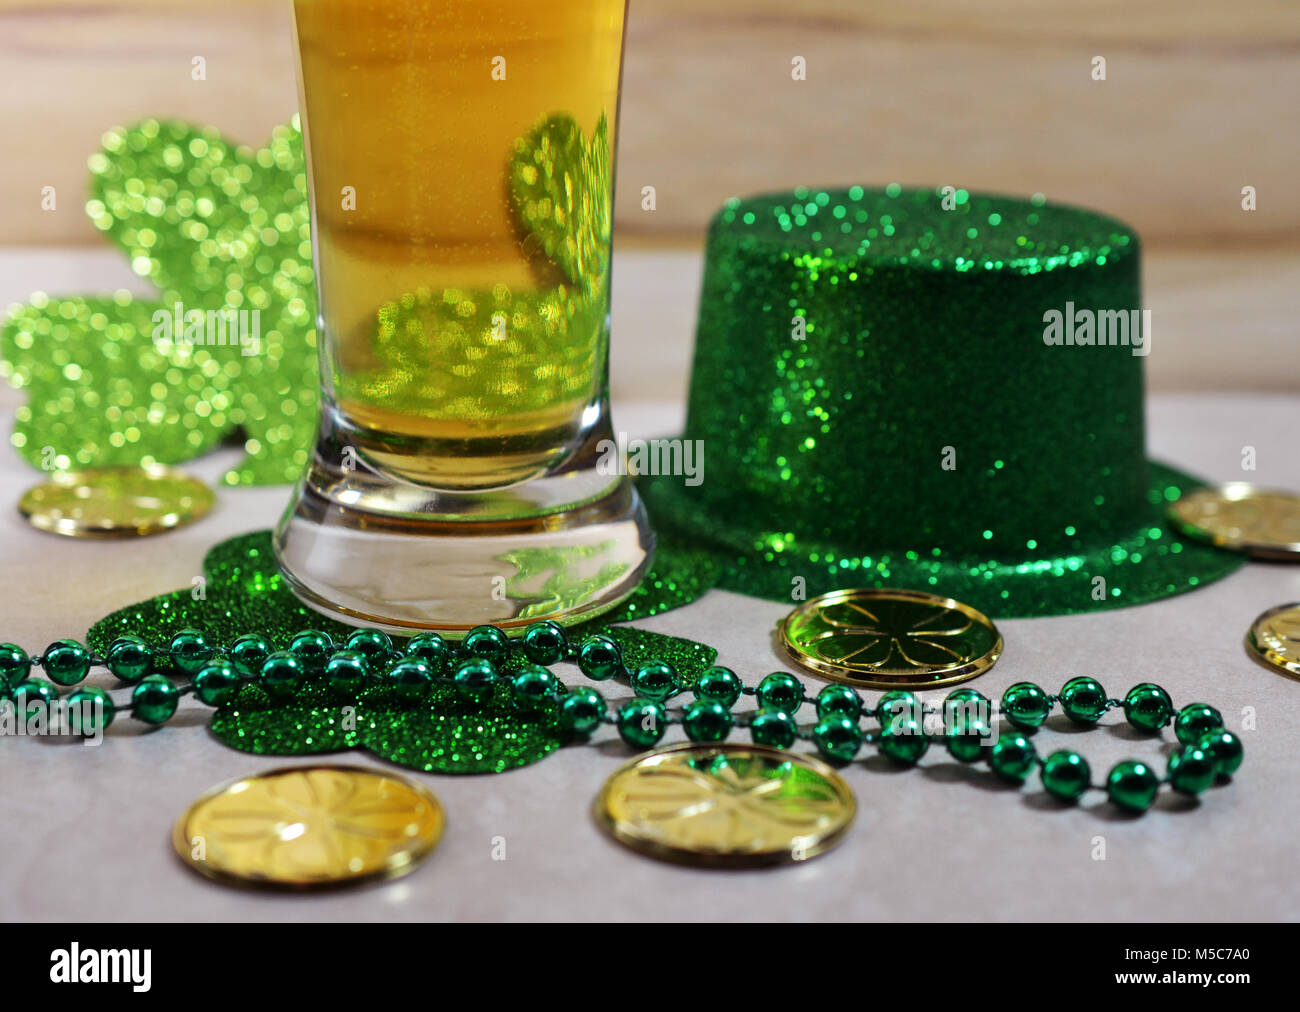 St Patrick's Day Beer glass filled with beer, green beads, gold coins and green top hat. - Stock Image